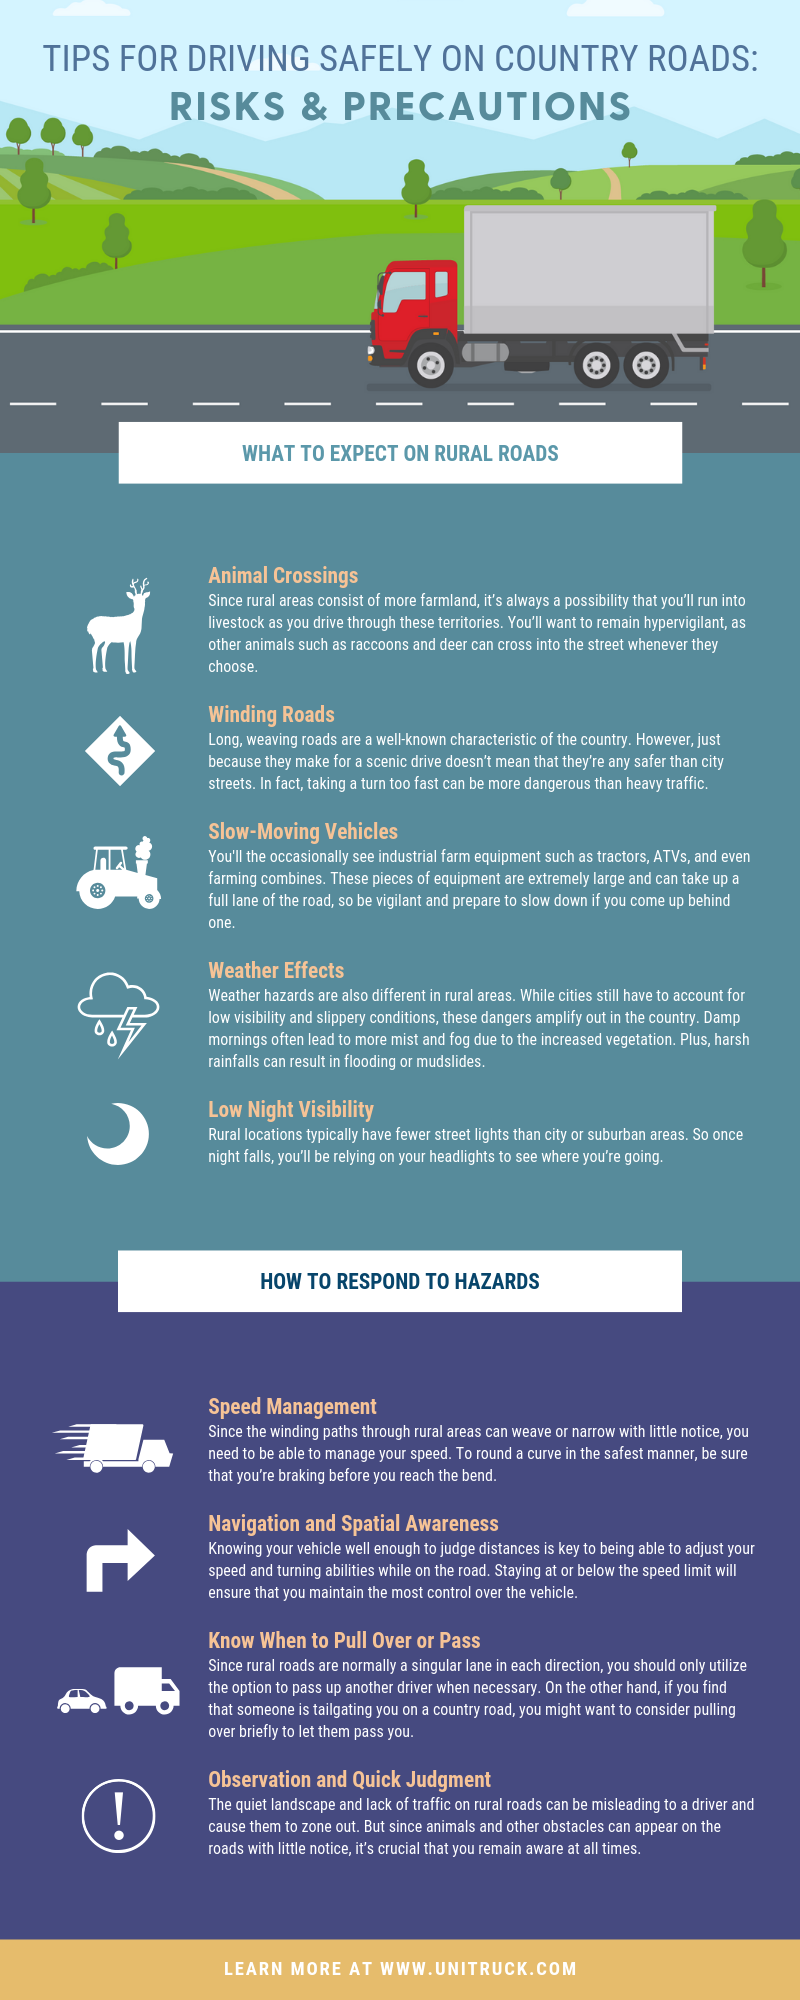 Tips for Driving Safely on Country Roads Risks & Precautions infographic